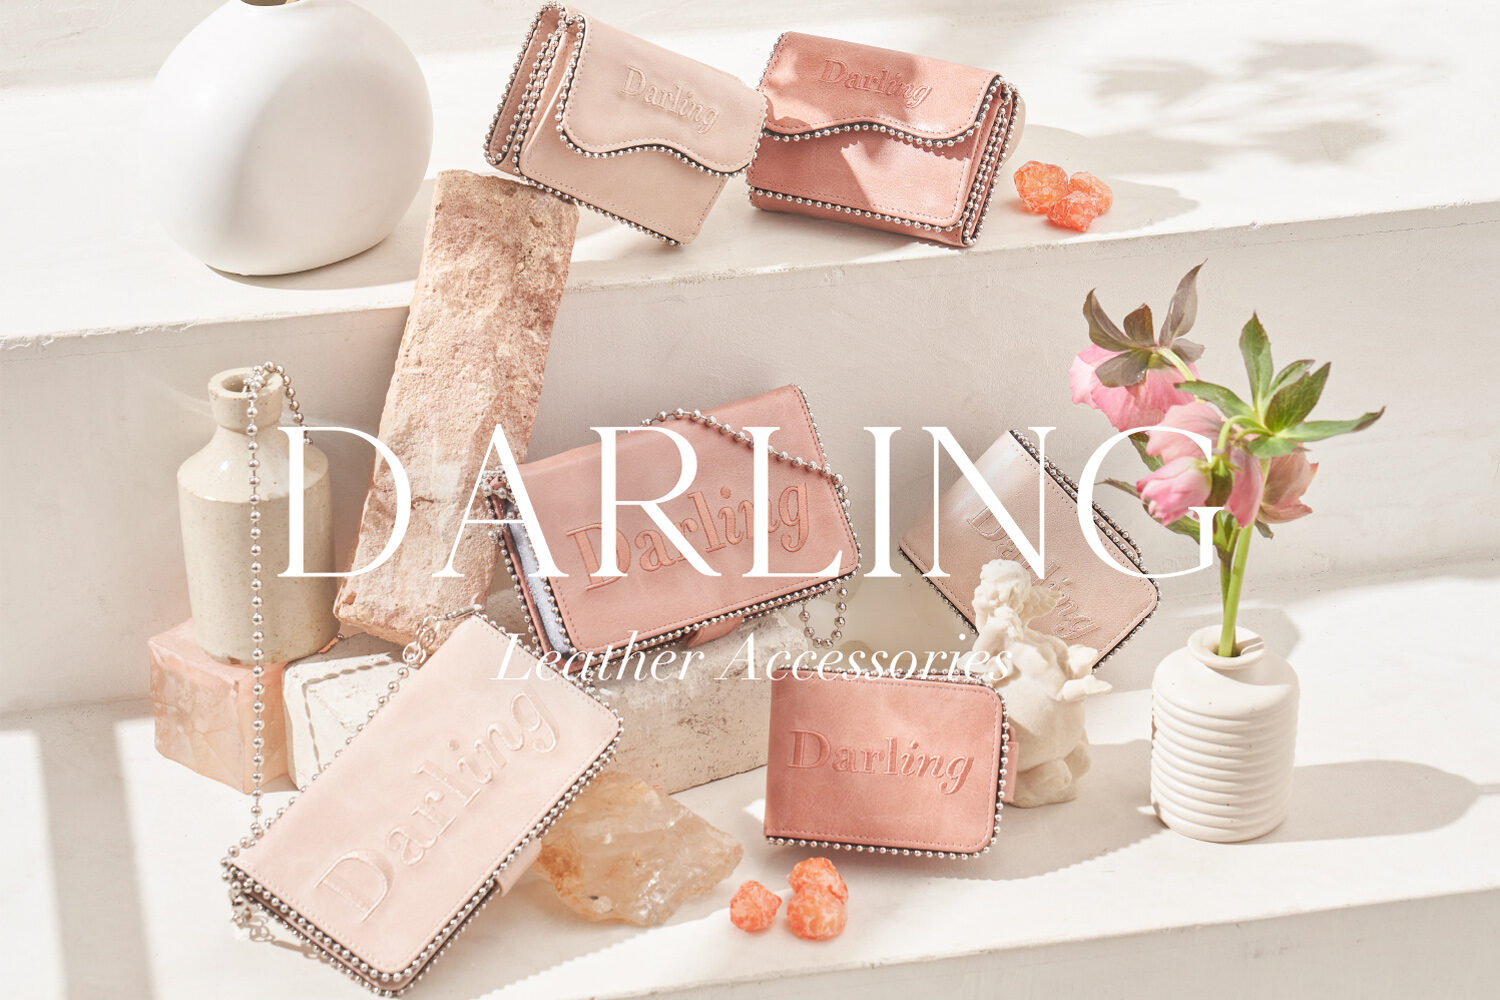 21SS Darling Leather Accessories新作特集